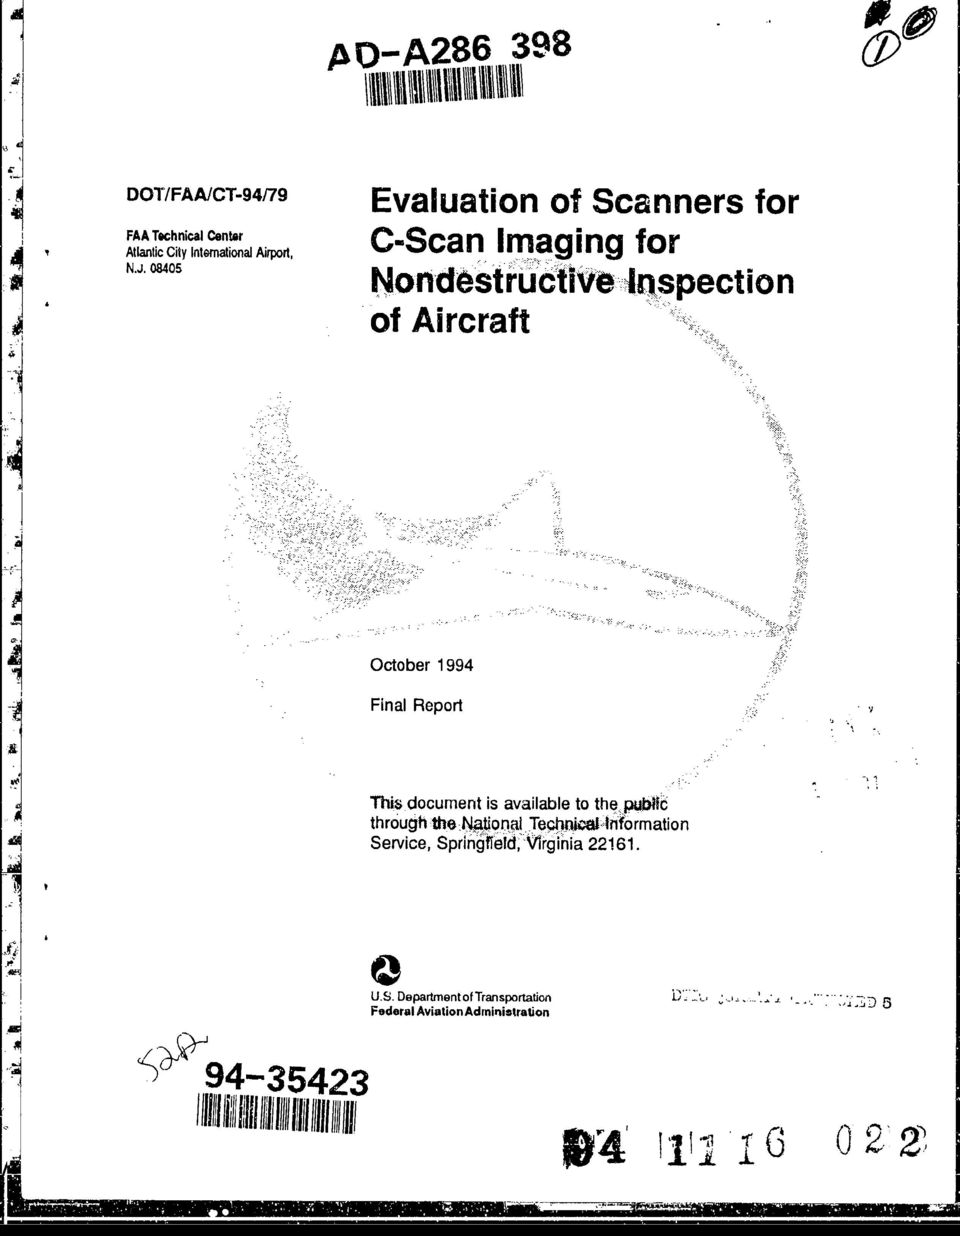 a n mag m gn gfoo Nontdestructive -Inspection of Aircraft October 1994 Final Report This document is available